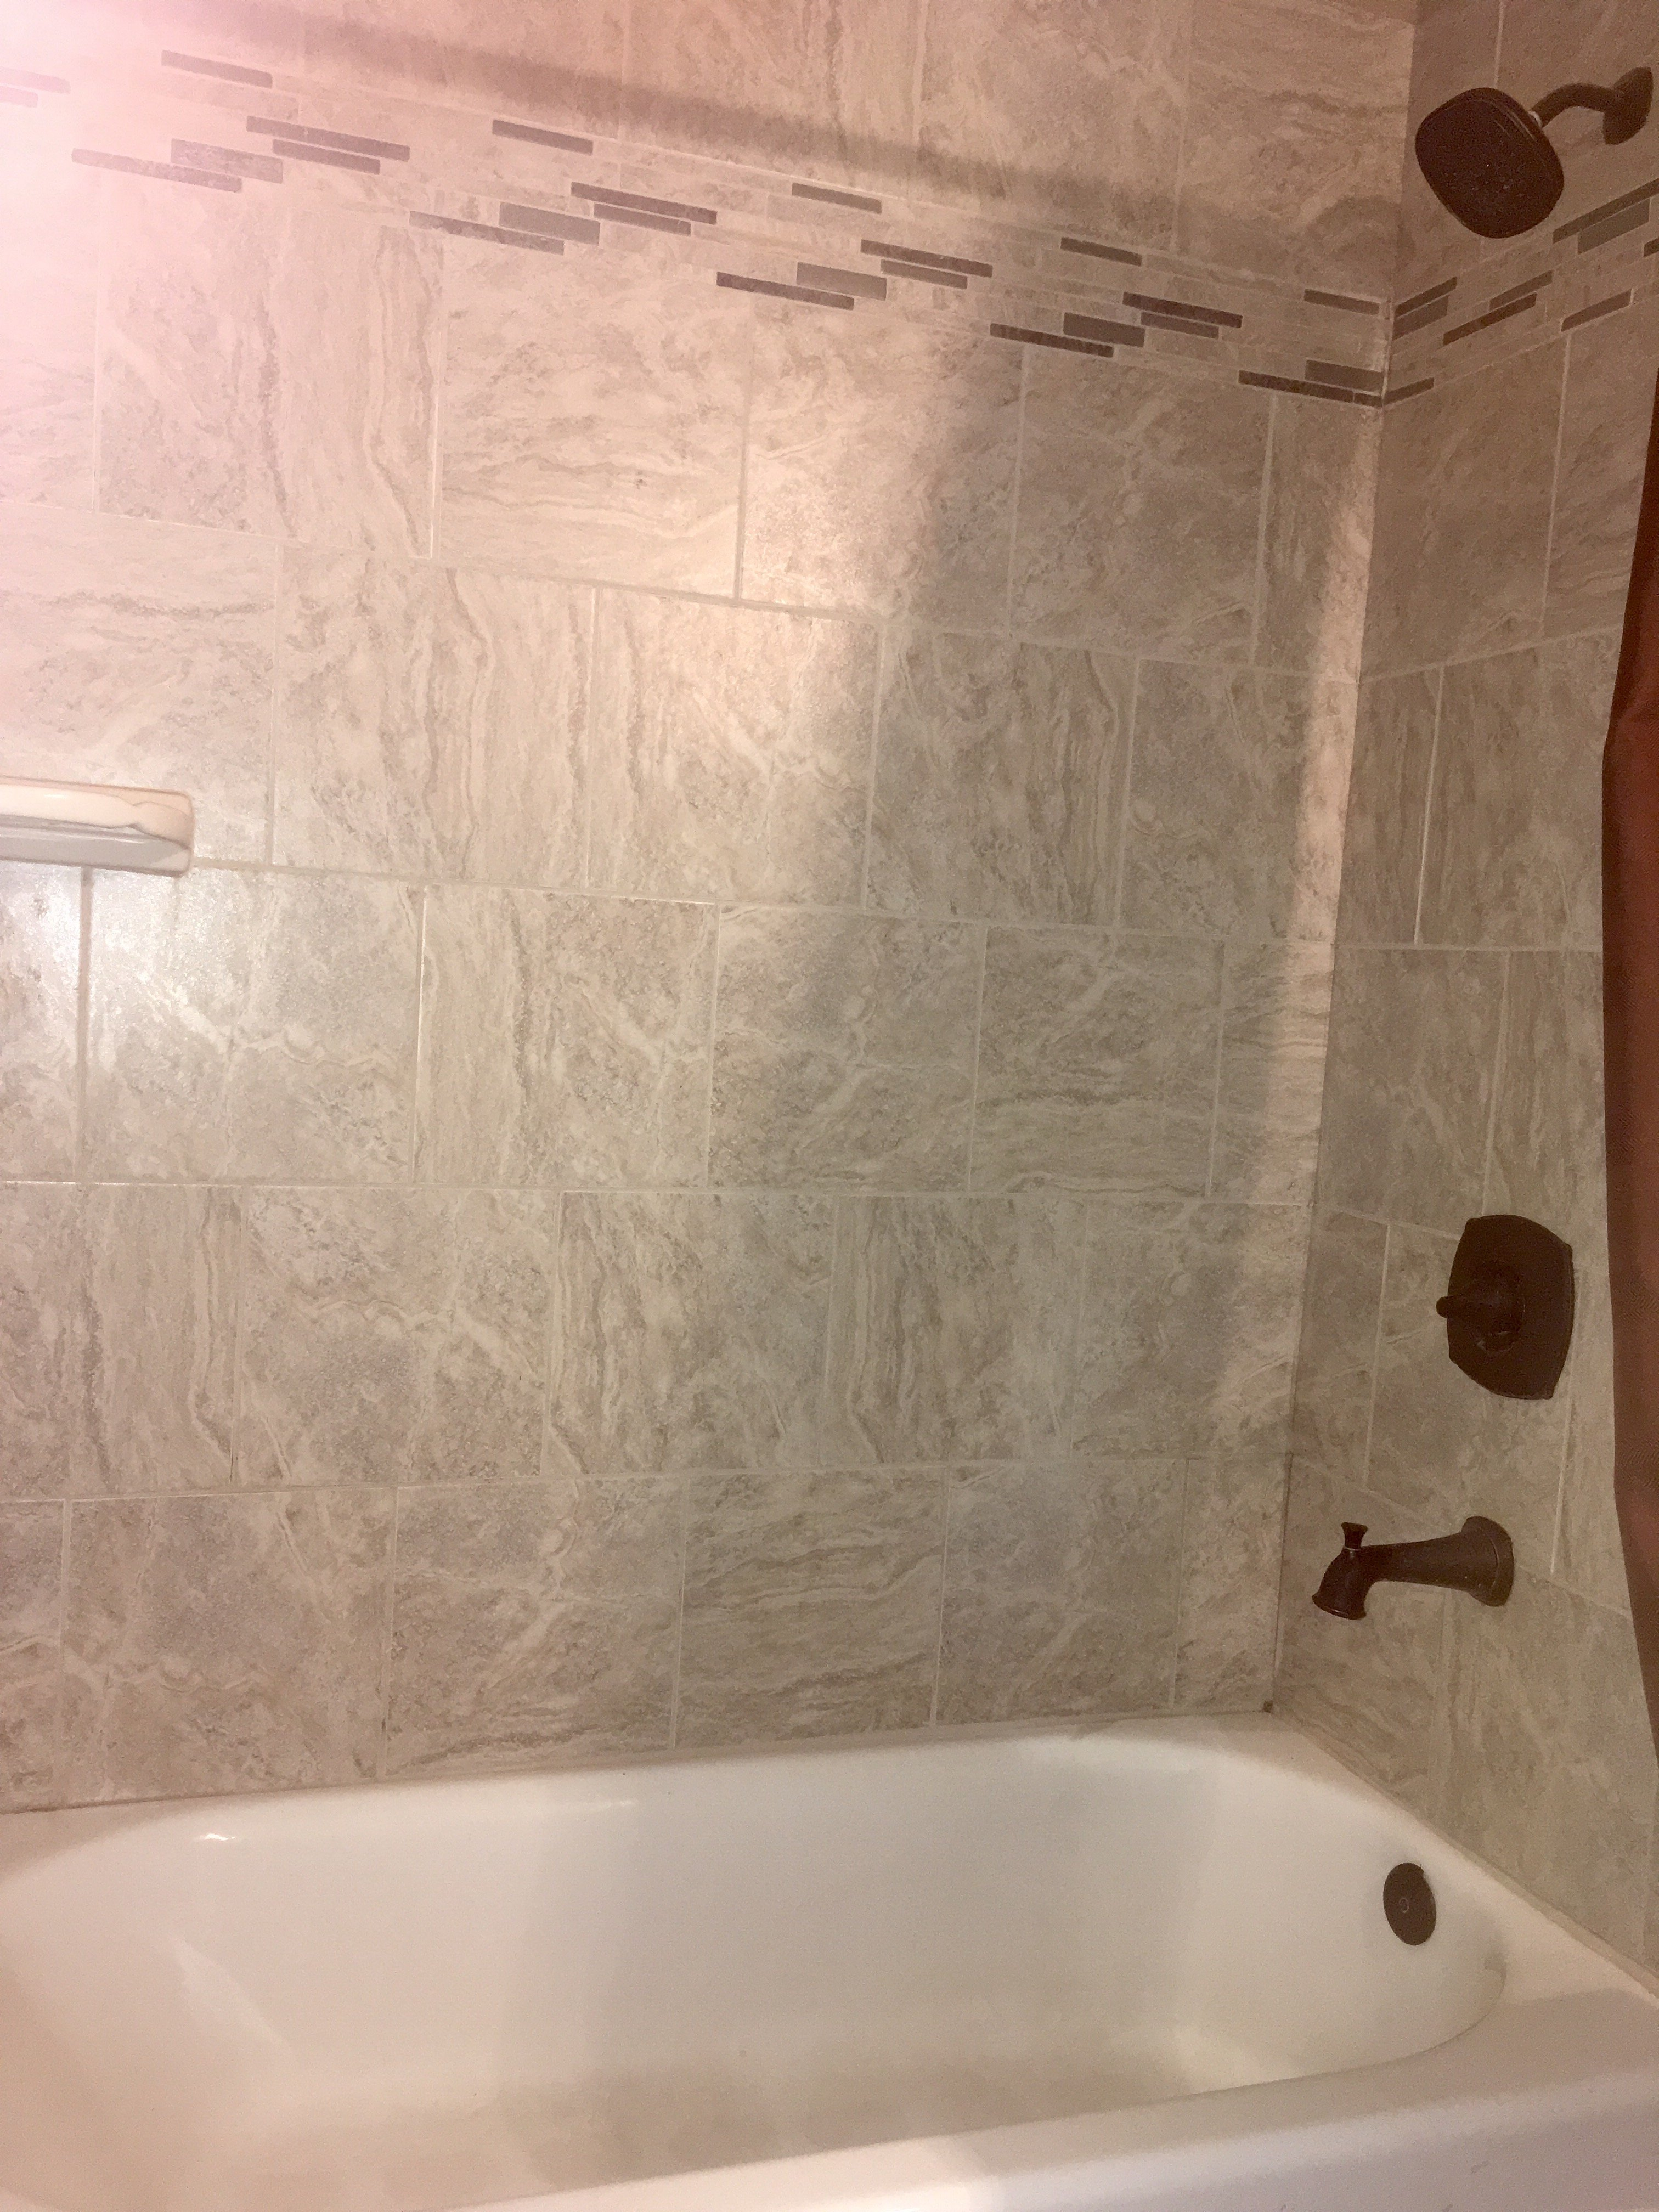 Brand new bathroom tub tiles installed by A & G Painting in Anchorage, AK